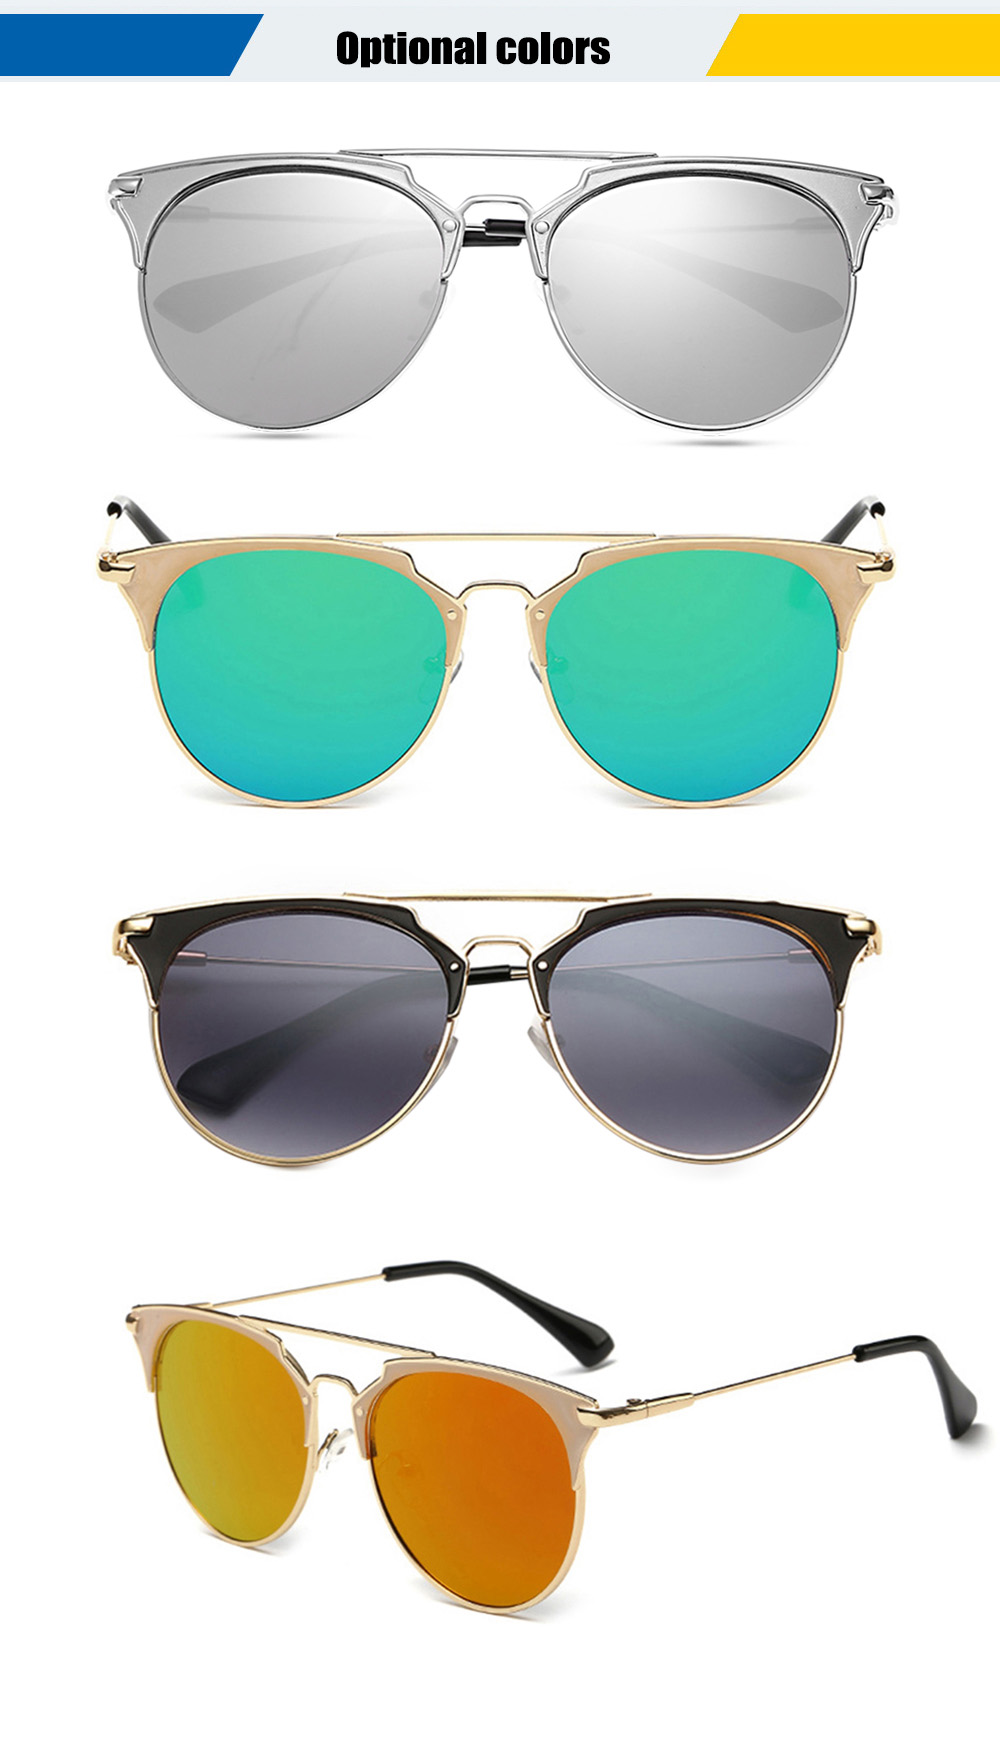 2110 UV-resistant Sunglasses Eyewear with PC Lens / Metal Frame